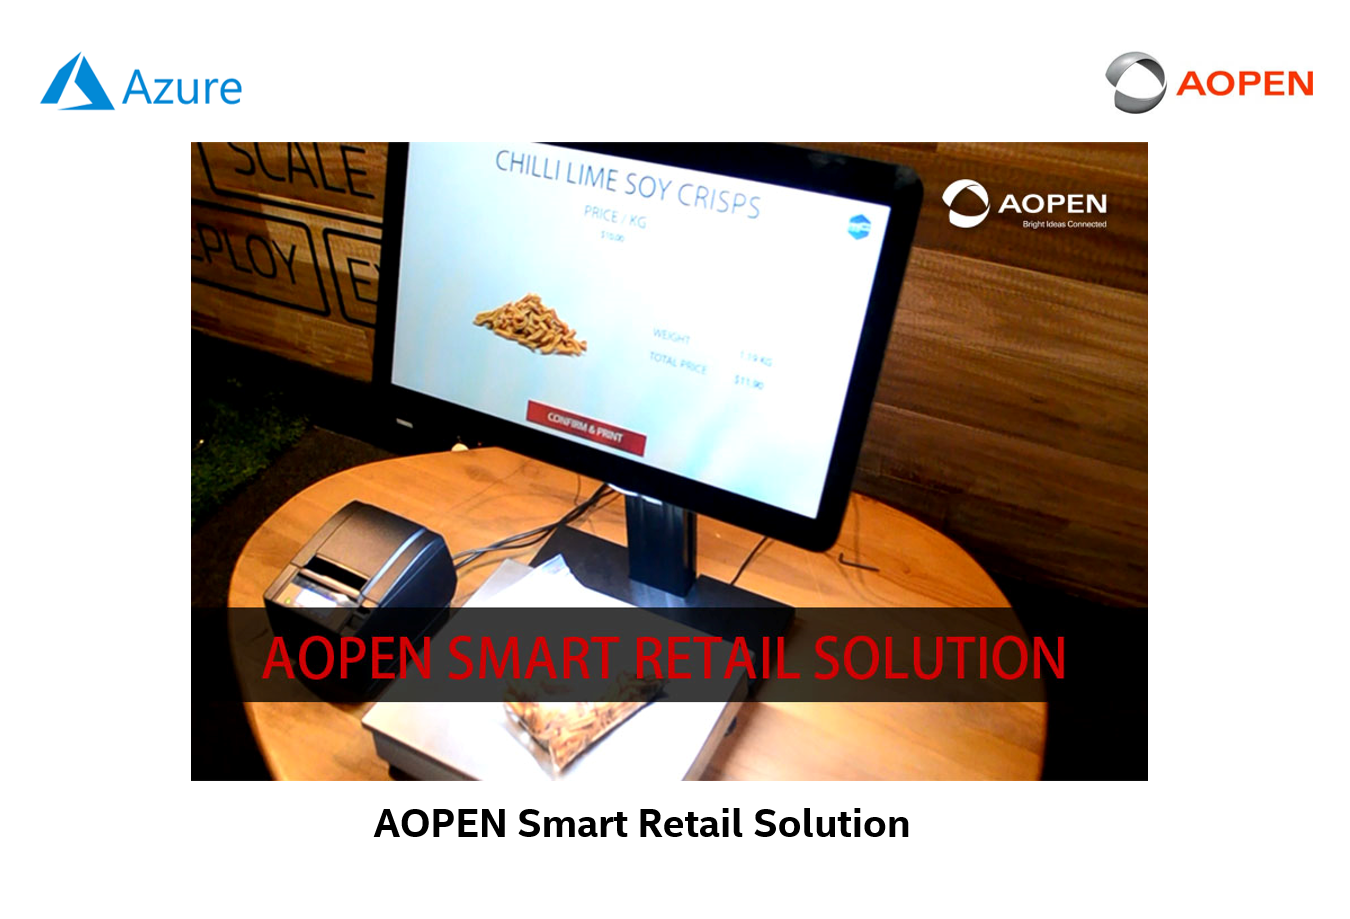 AOPEN Smart Retail Solution onboard